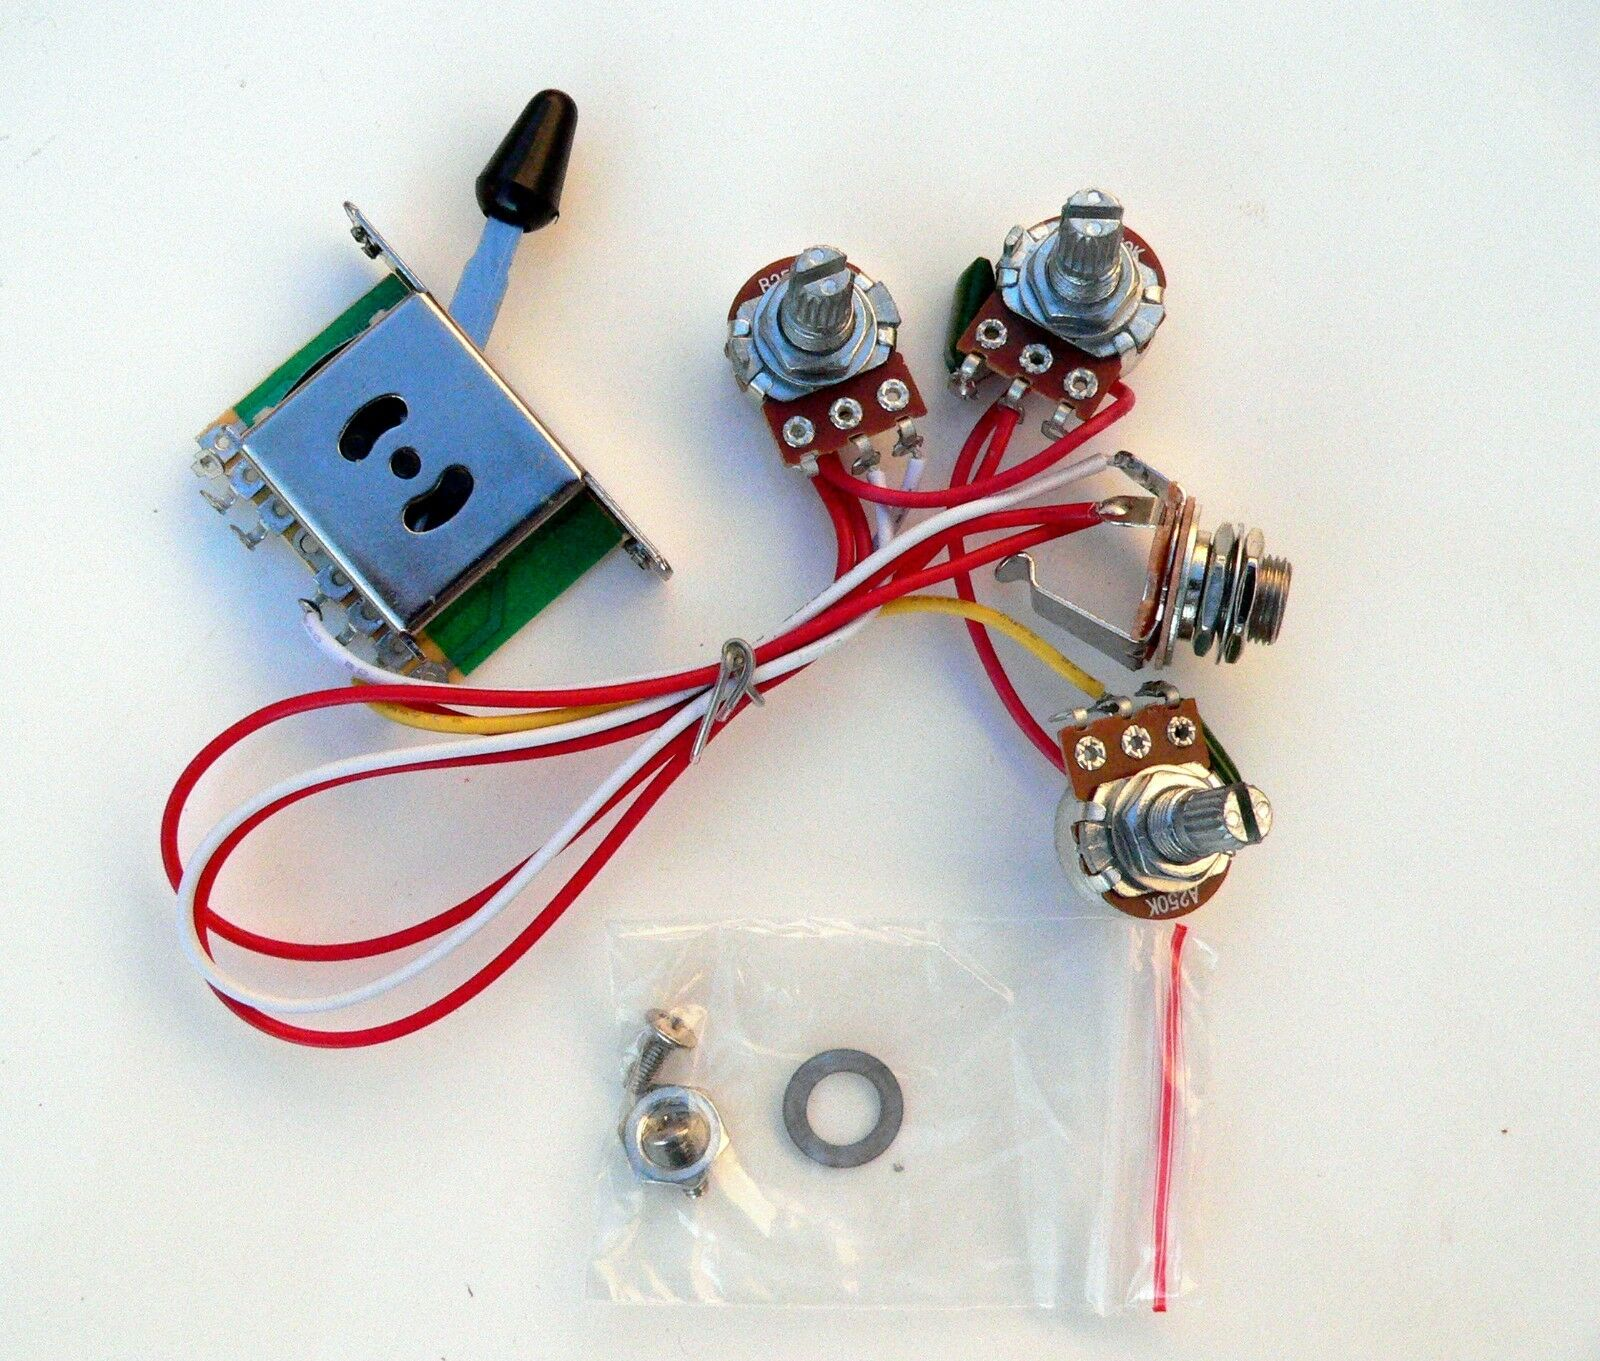 250k 5 Way Wiring Harness For Fender Stratocaster Guitar Sss Single Strat 1 Of 2only 3 Available